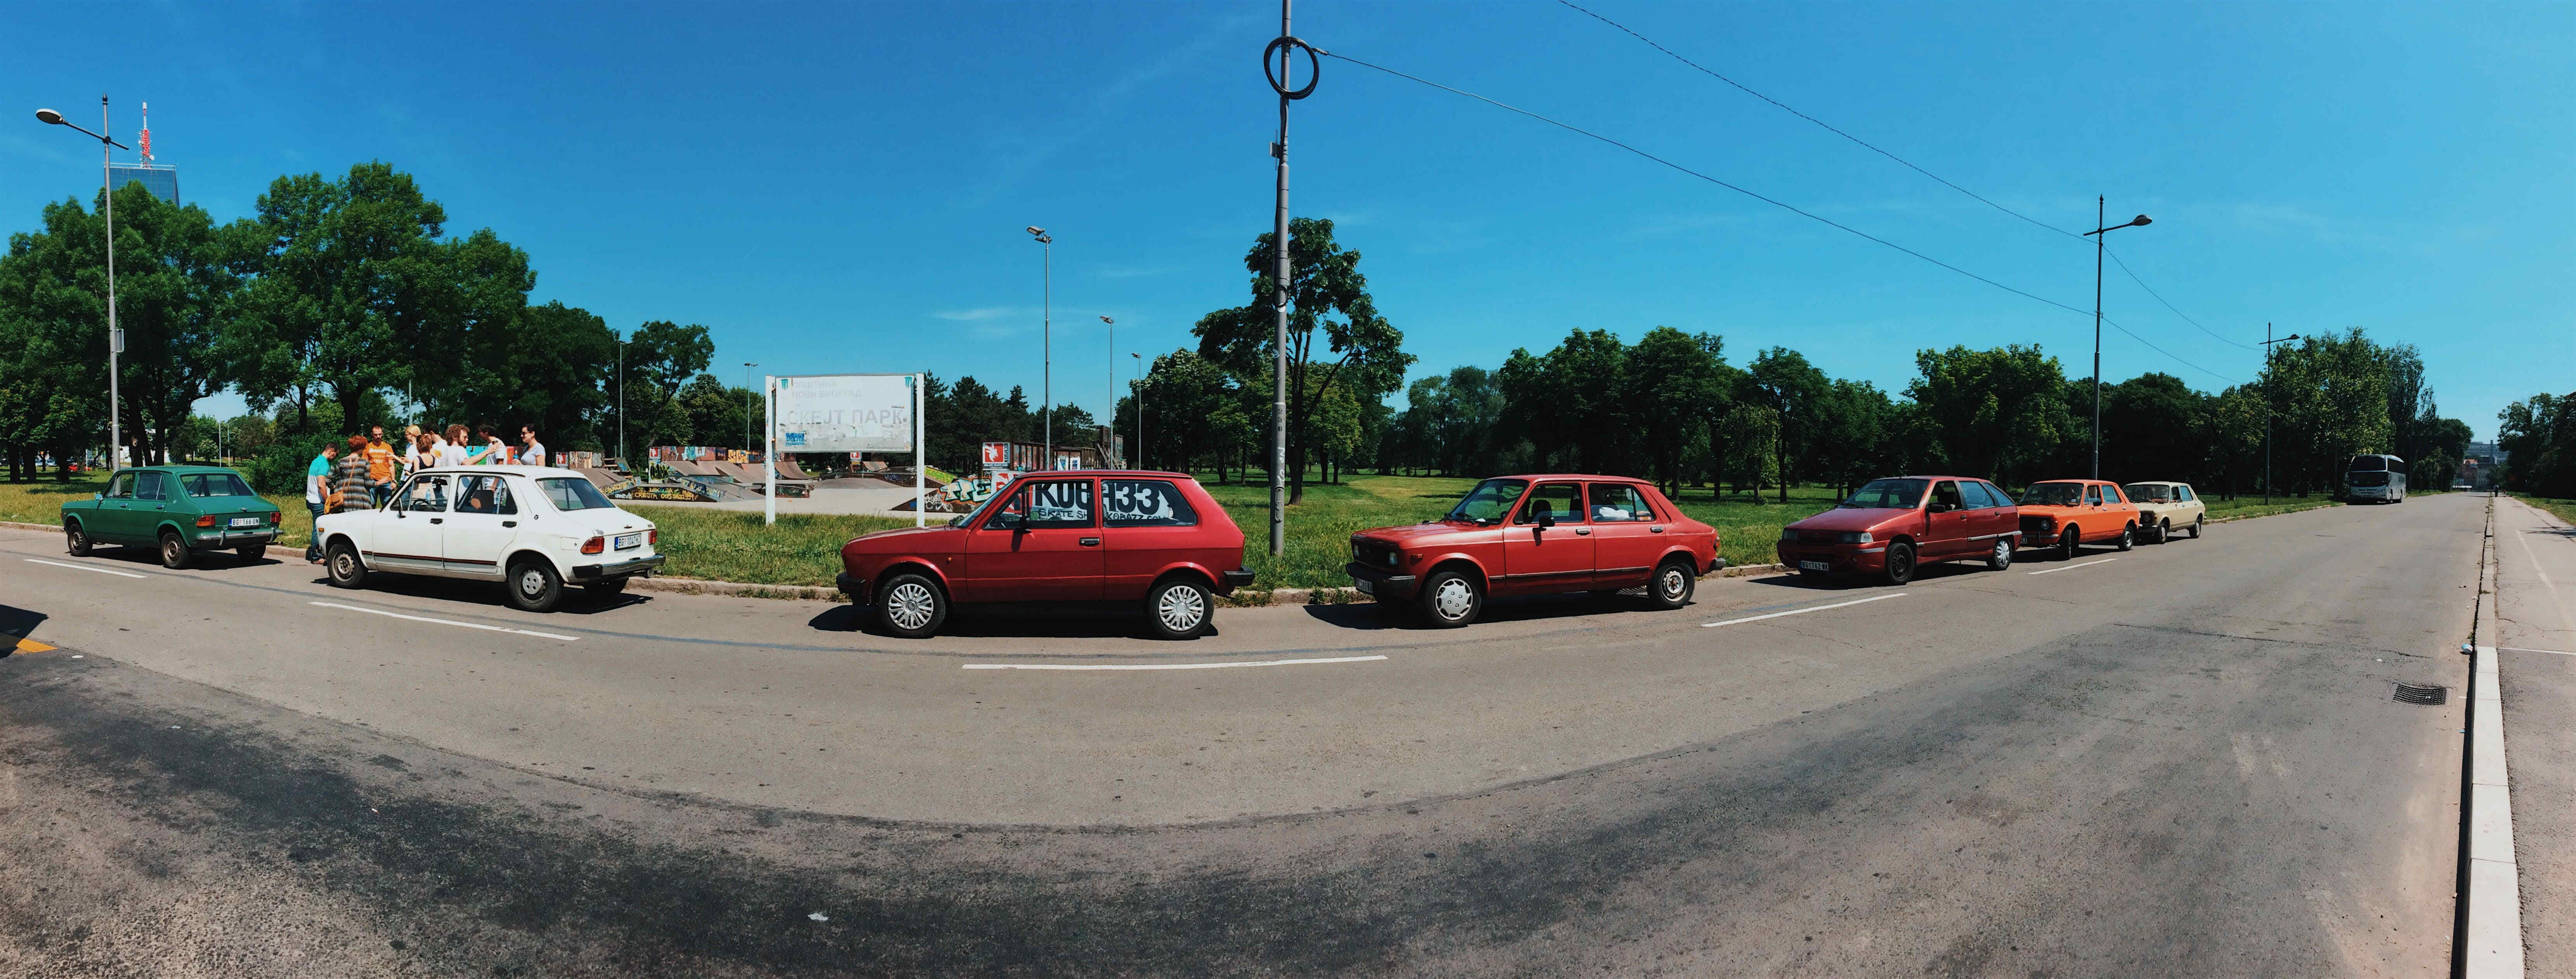 Jump into an old Yugo car to explore a country that no longer exists